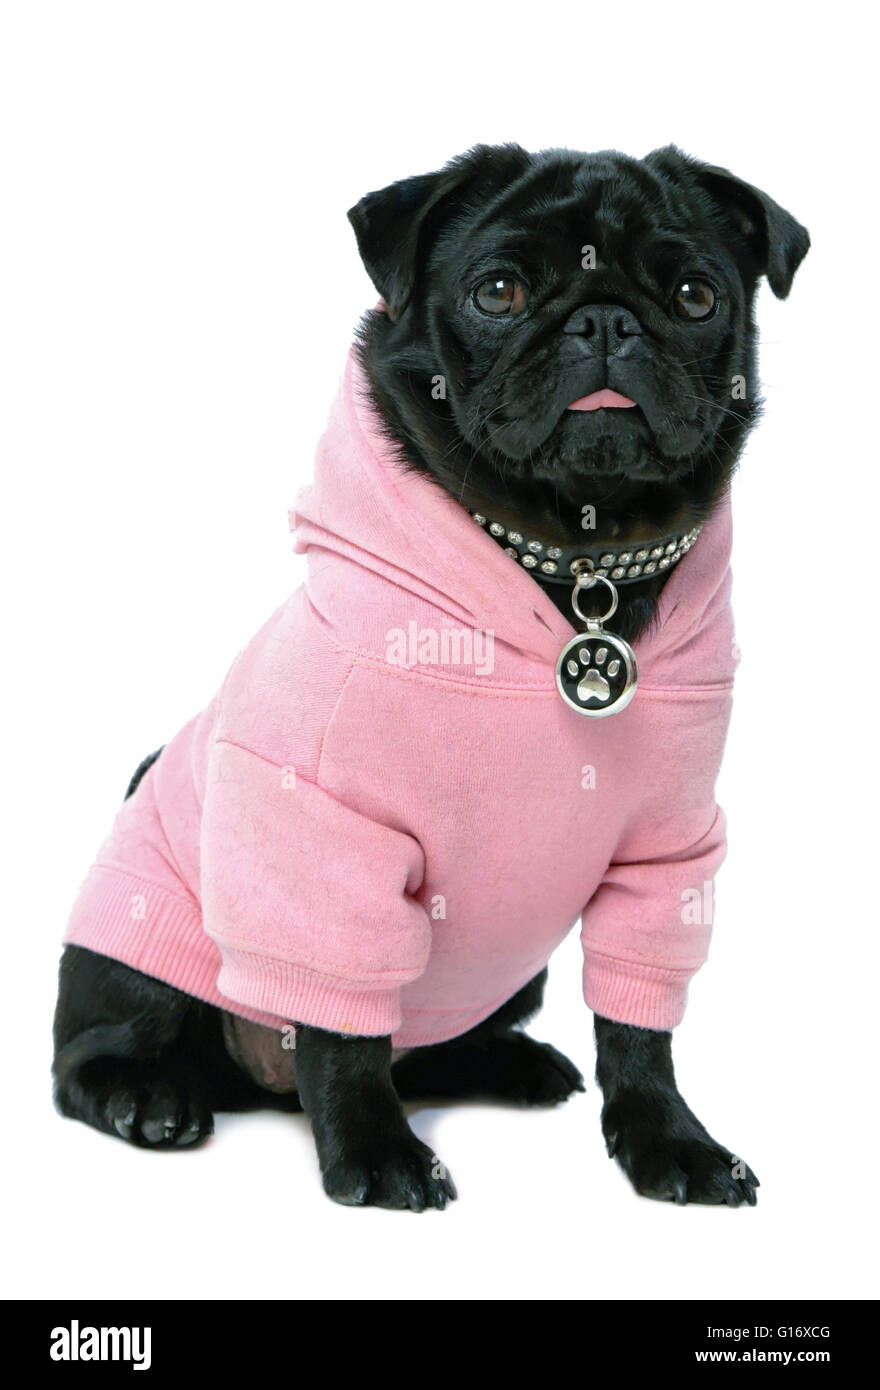 Small black pug puppy dog in pink clothes isolated on white background  Model Release: No.  Property Release: Yes - Stock Image